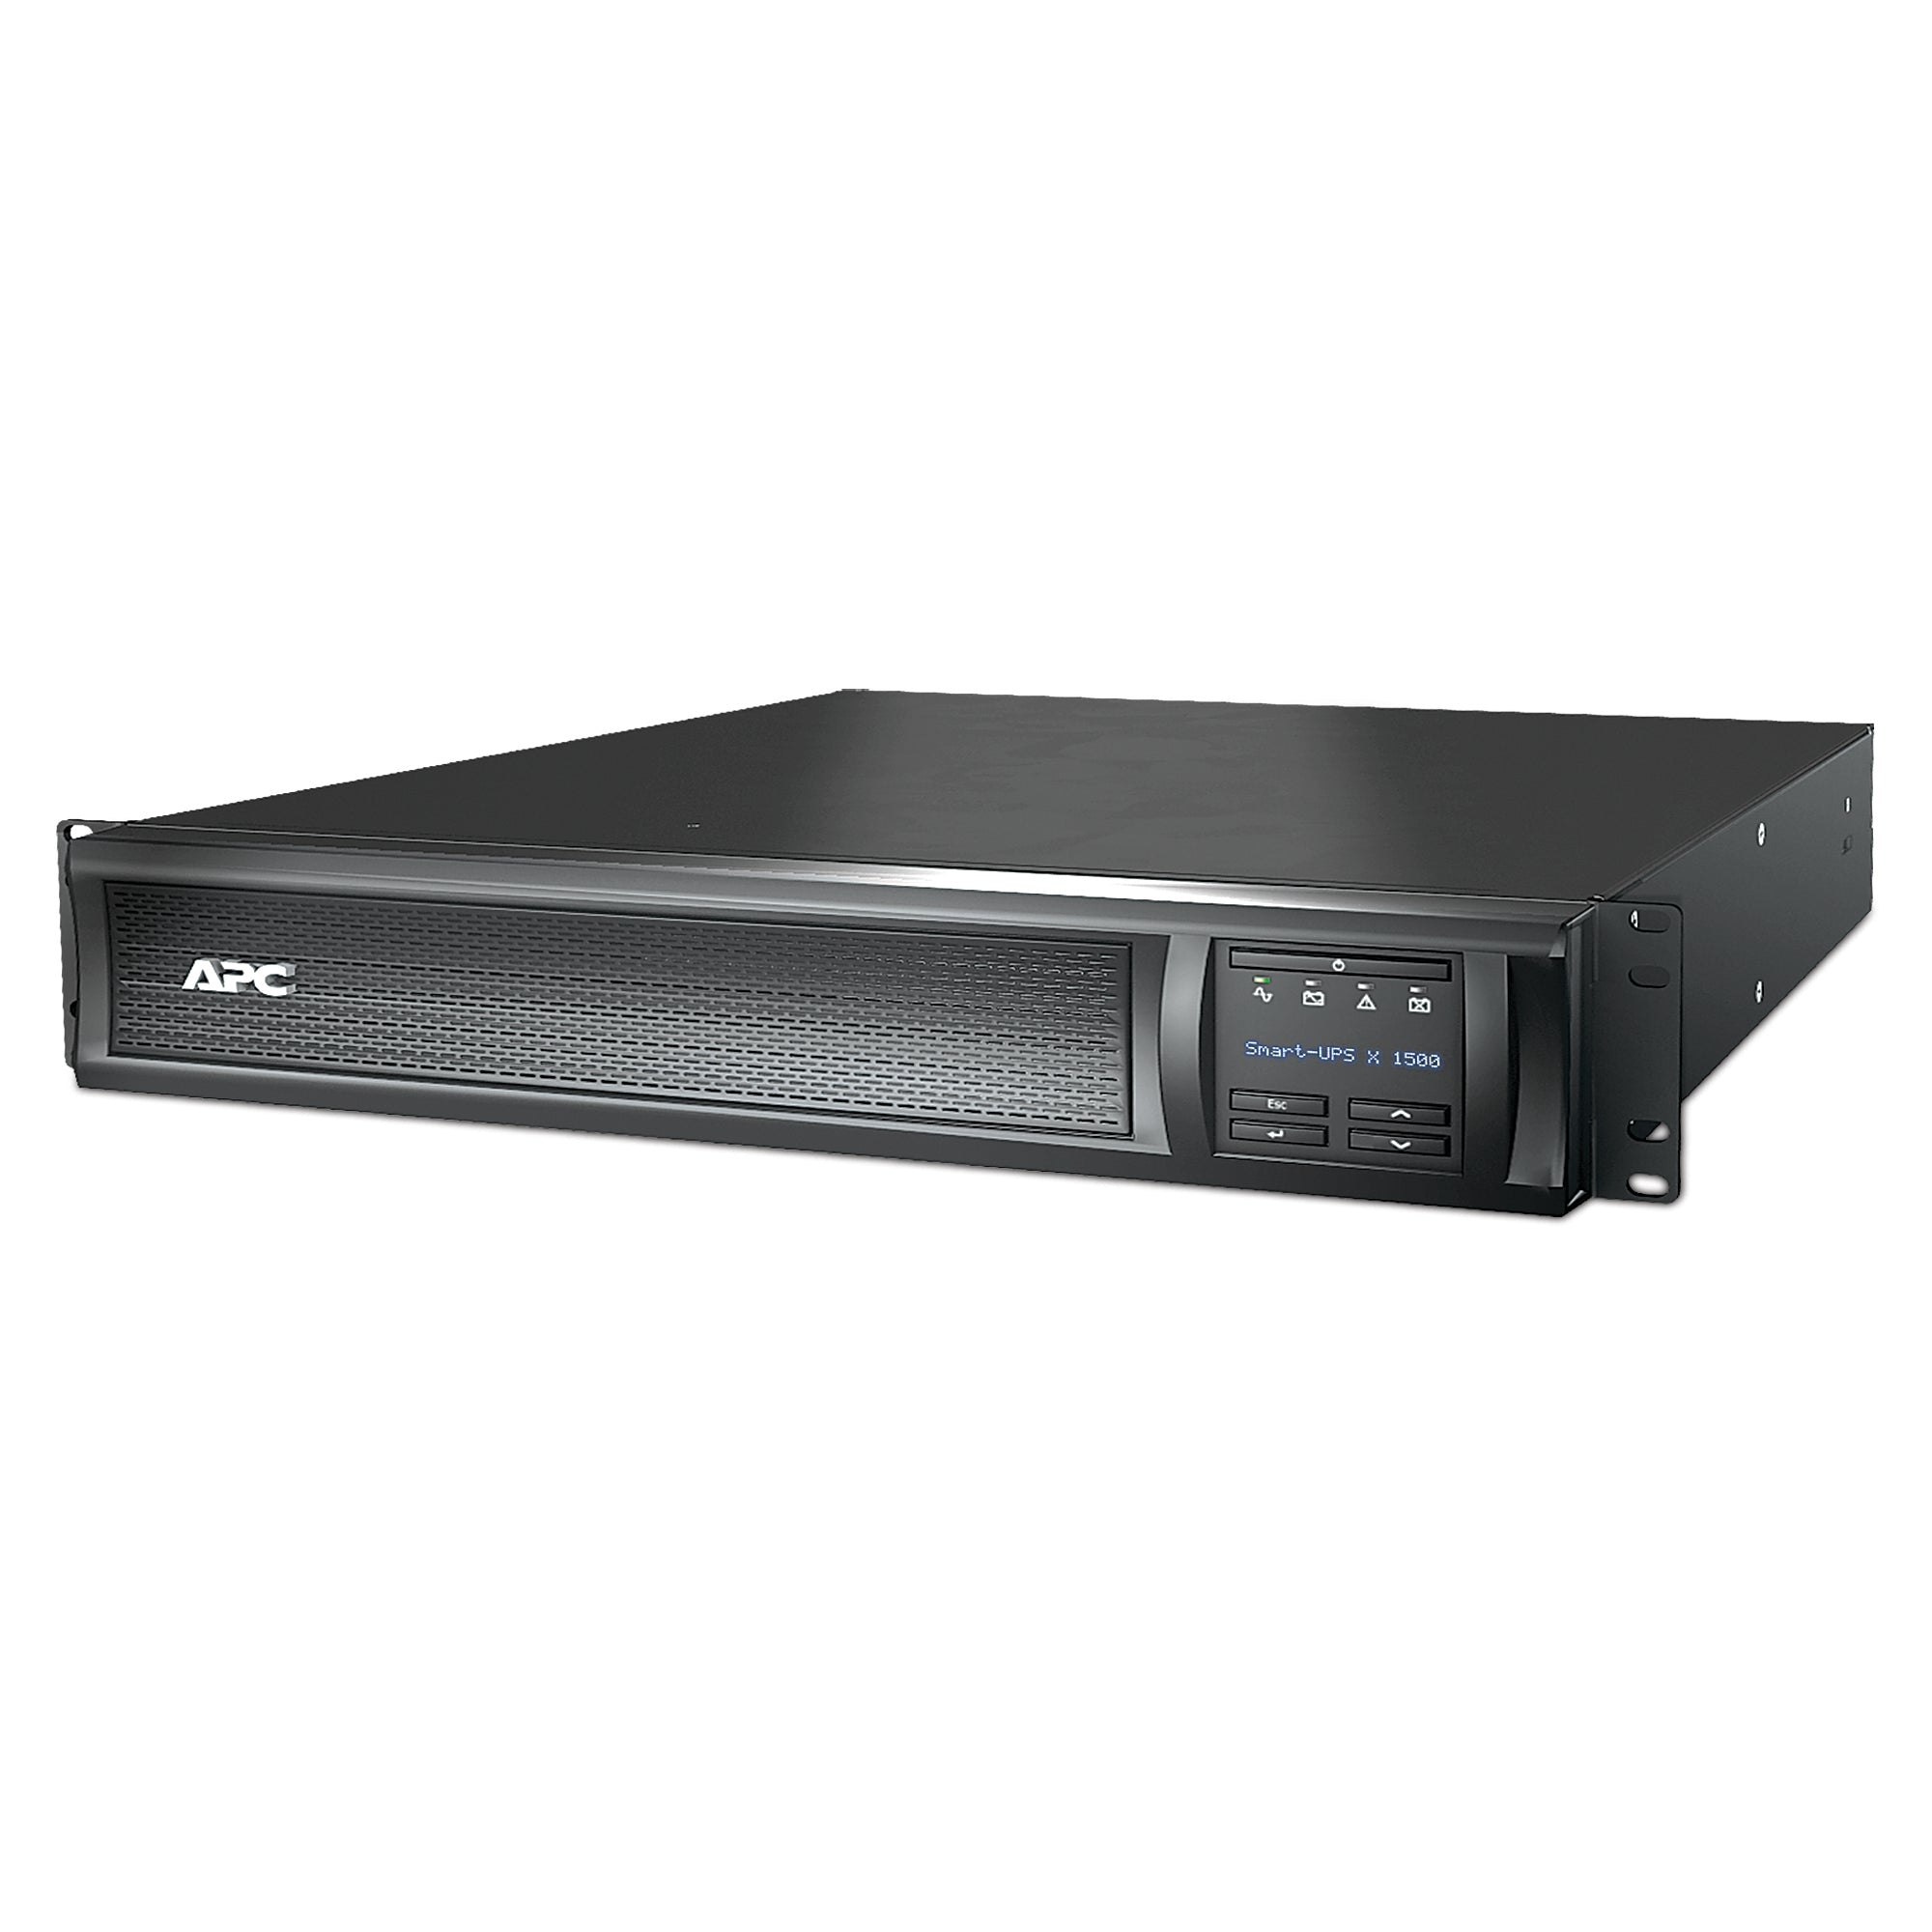 SMX1500RMI2U APC Smart-UPS X 1500VA Rack/Tower LCD 230V